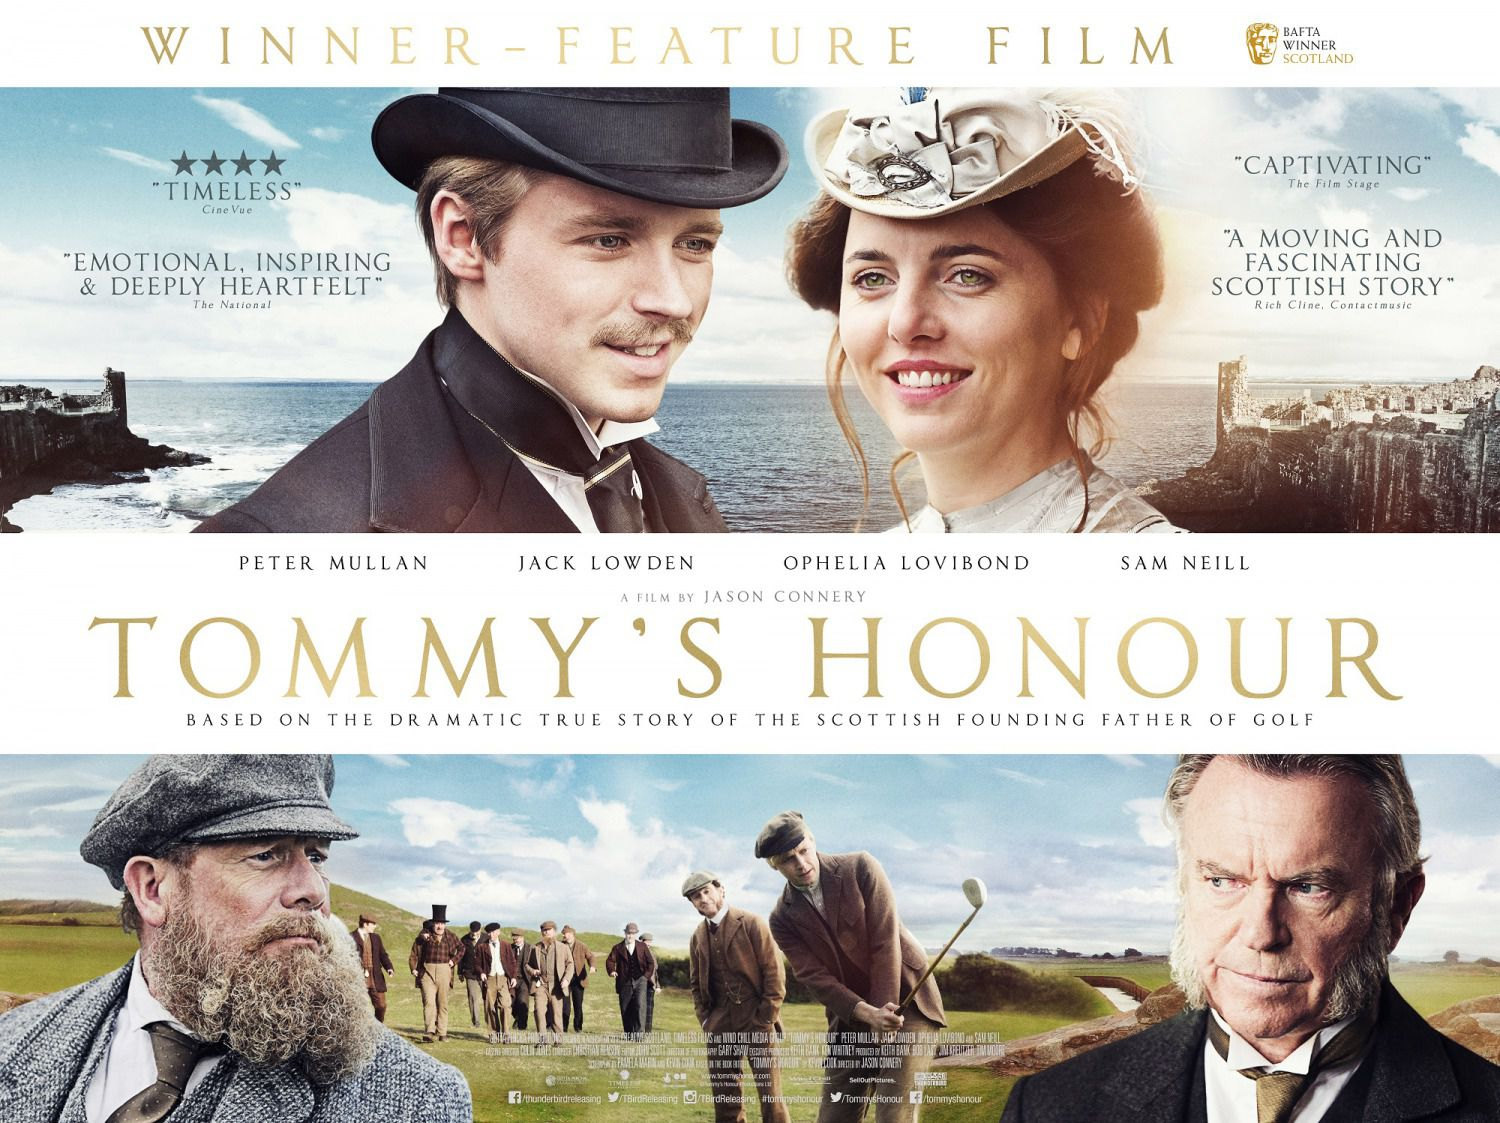 Tommy's honour - Onore di Tommy - cast Peter Mullan, Jack Lowden, Ophelia Lovibond, Sam Neill - film poster